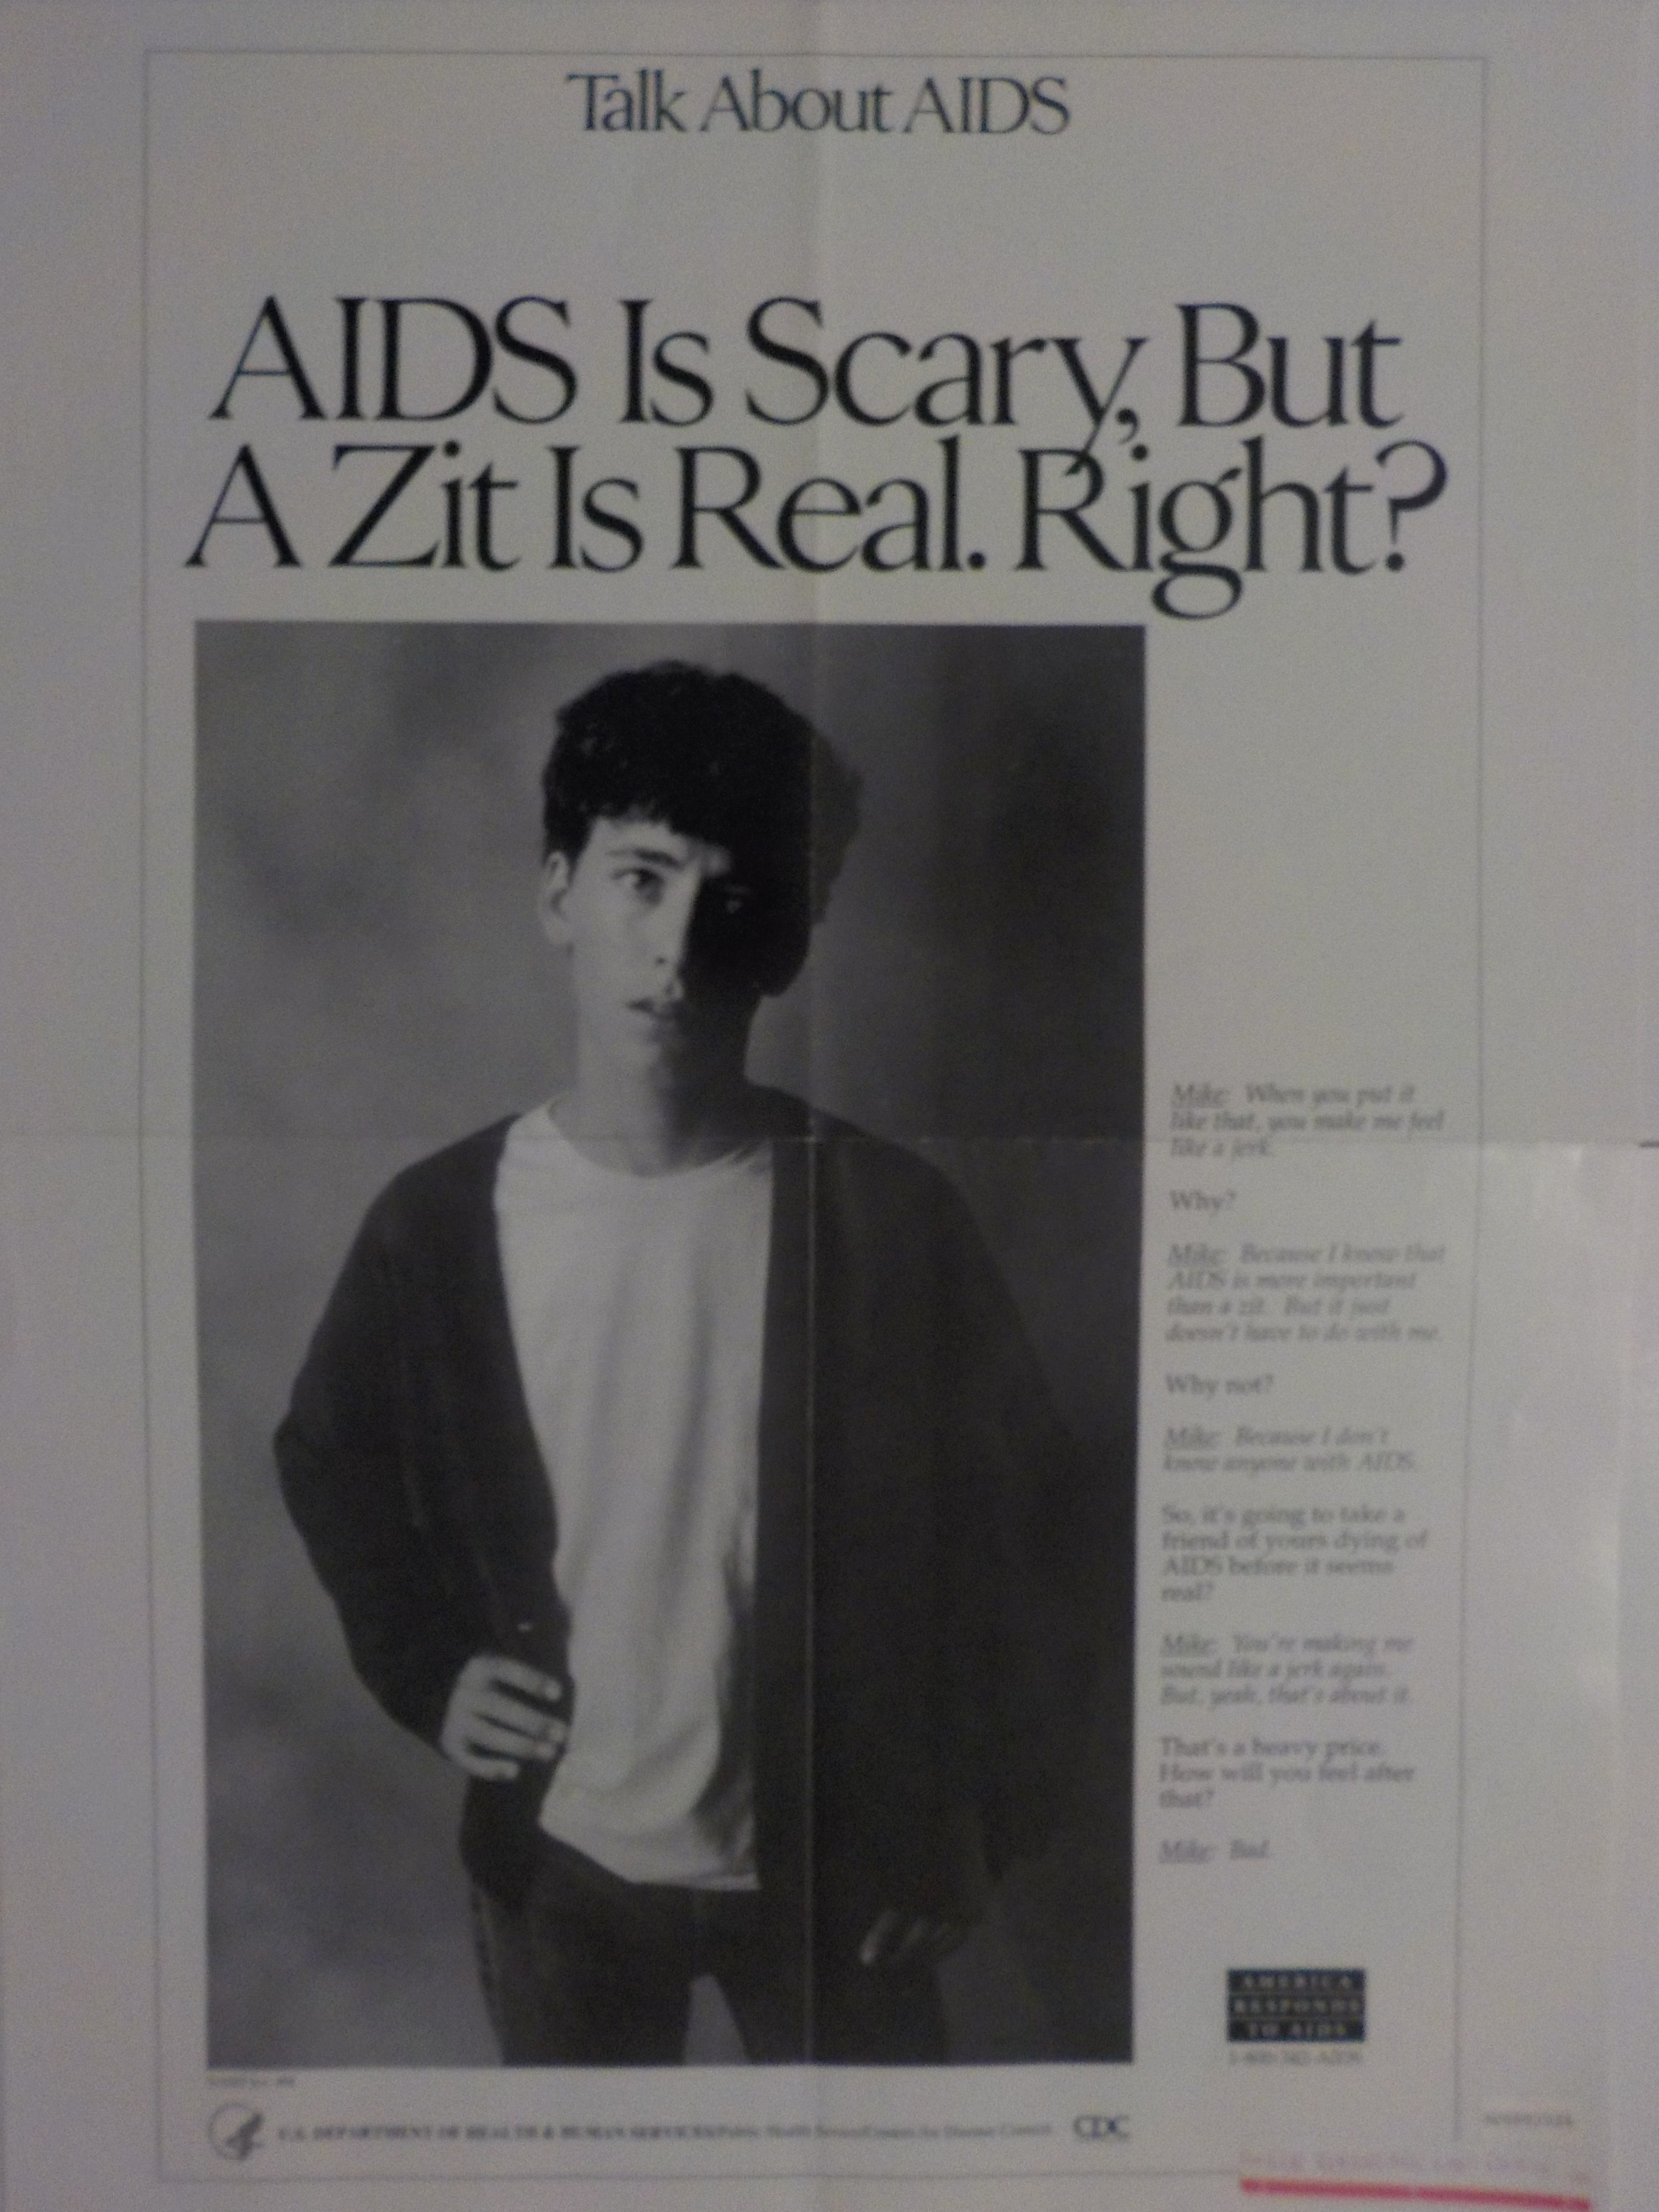 AIDS is scary but a zit is real. Right?